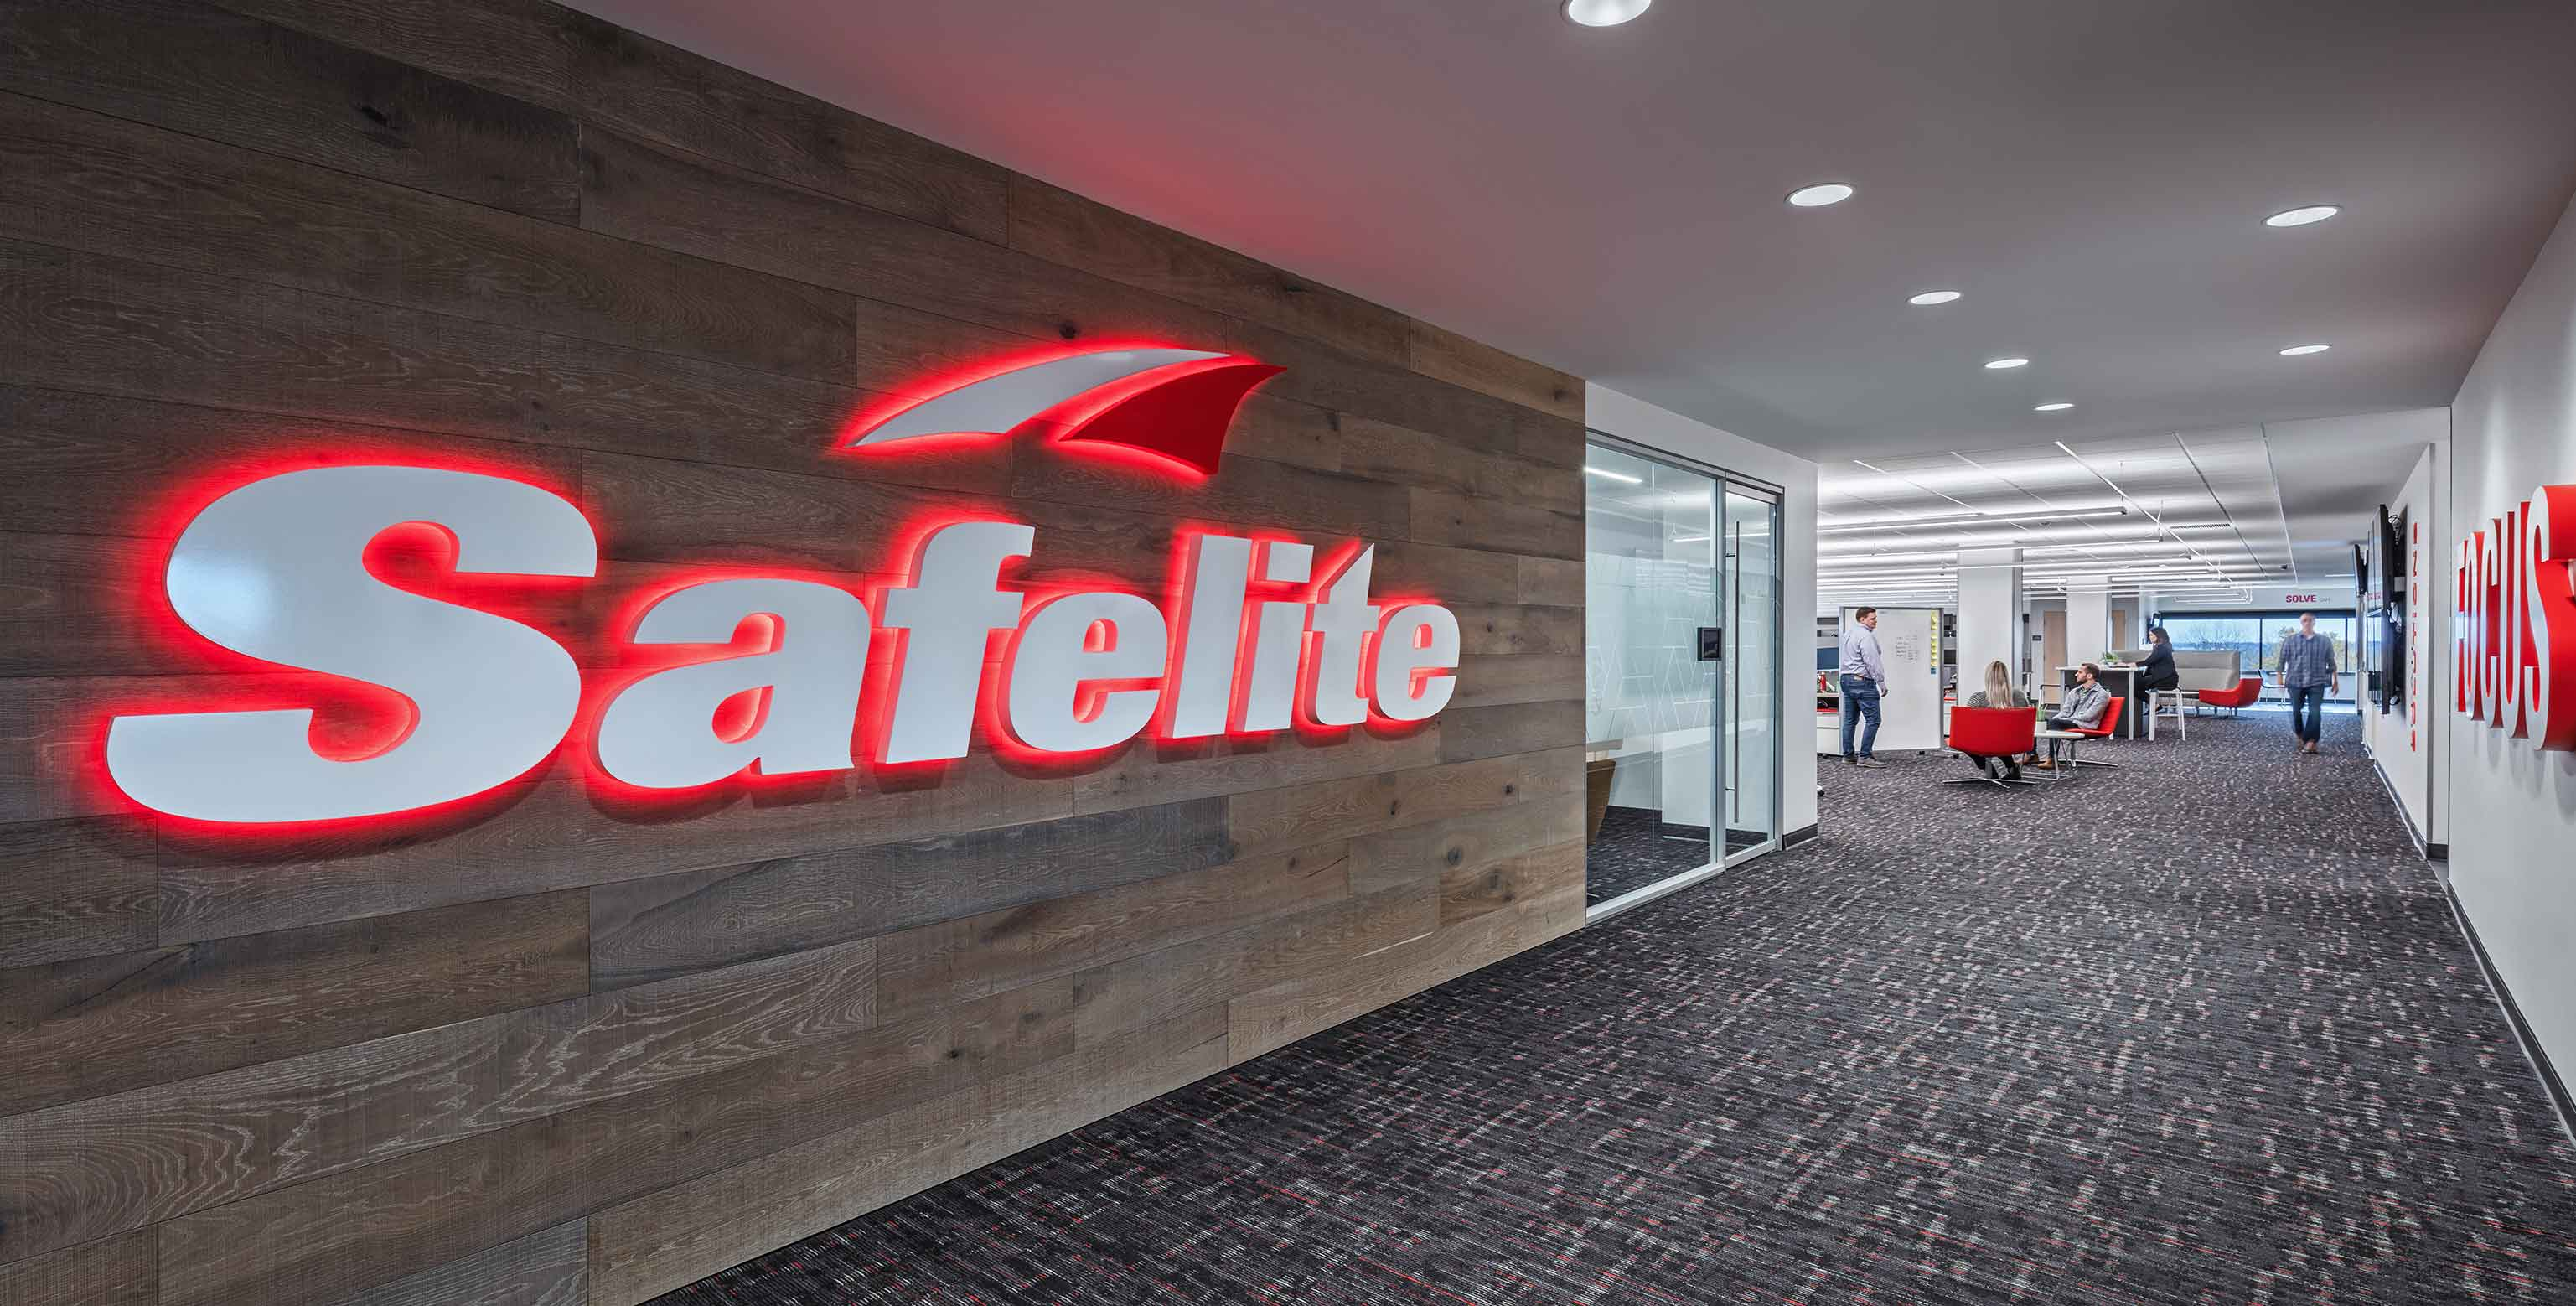 Safelite's logo shines bright on a wood panel wall